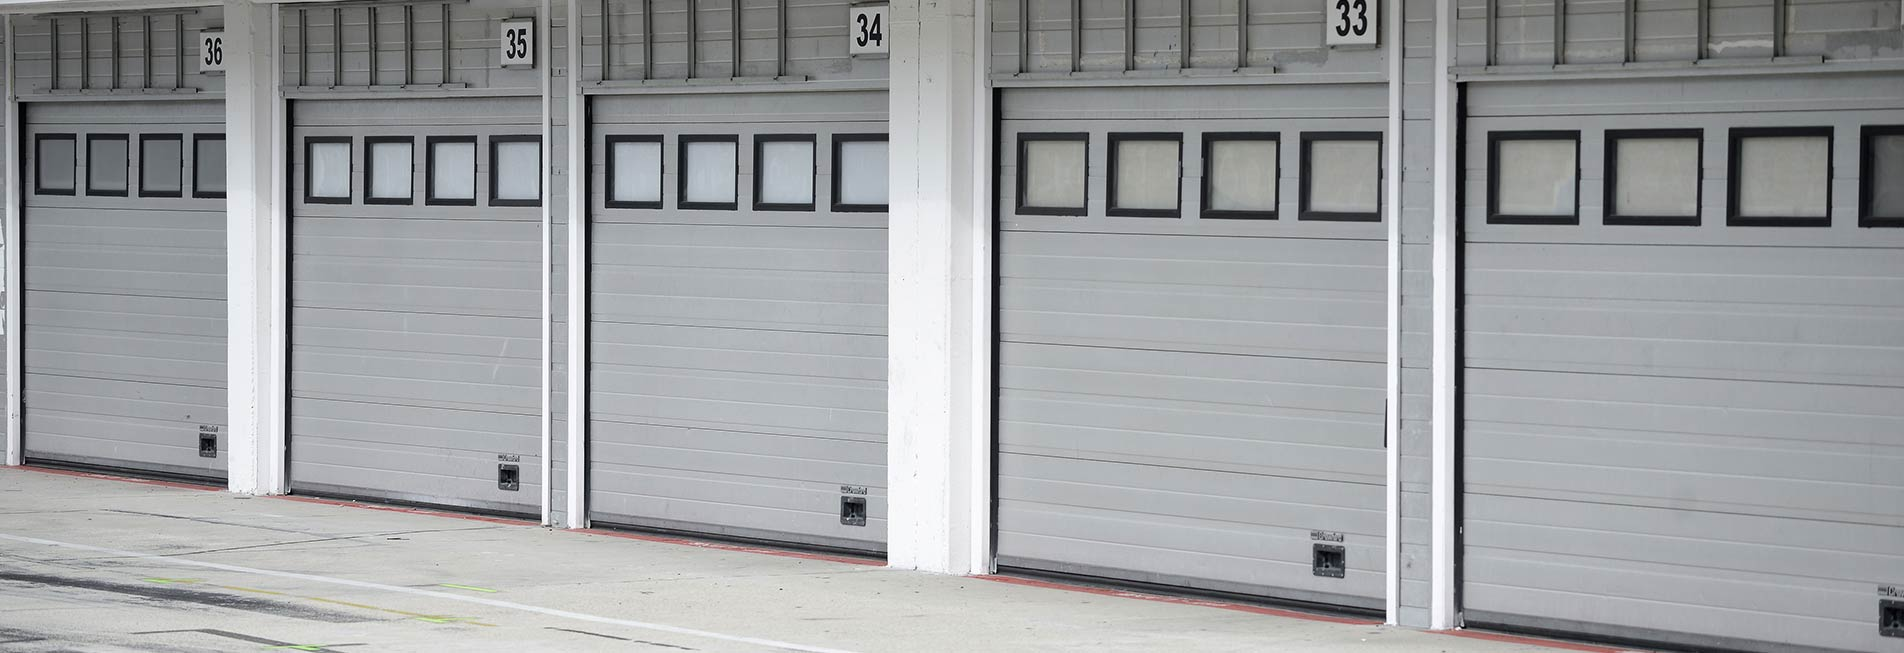 Trust Garage Door Service Galveston, TX 409-422-3140